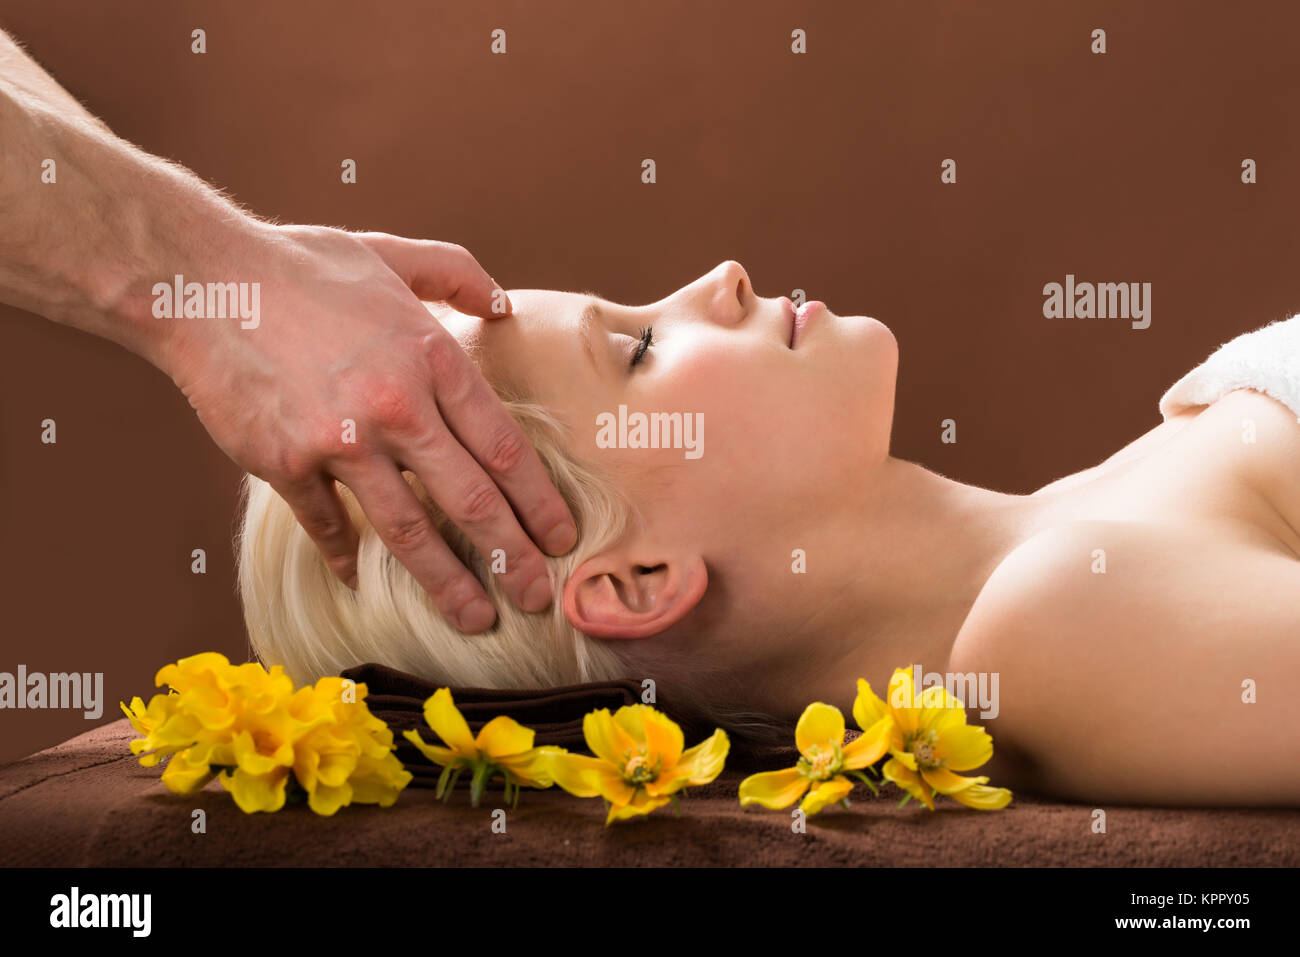 Young Woman Receiving Massage At Spa - Stock Image